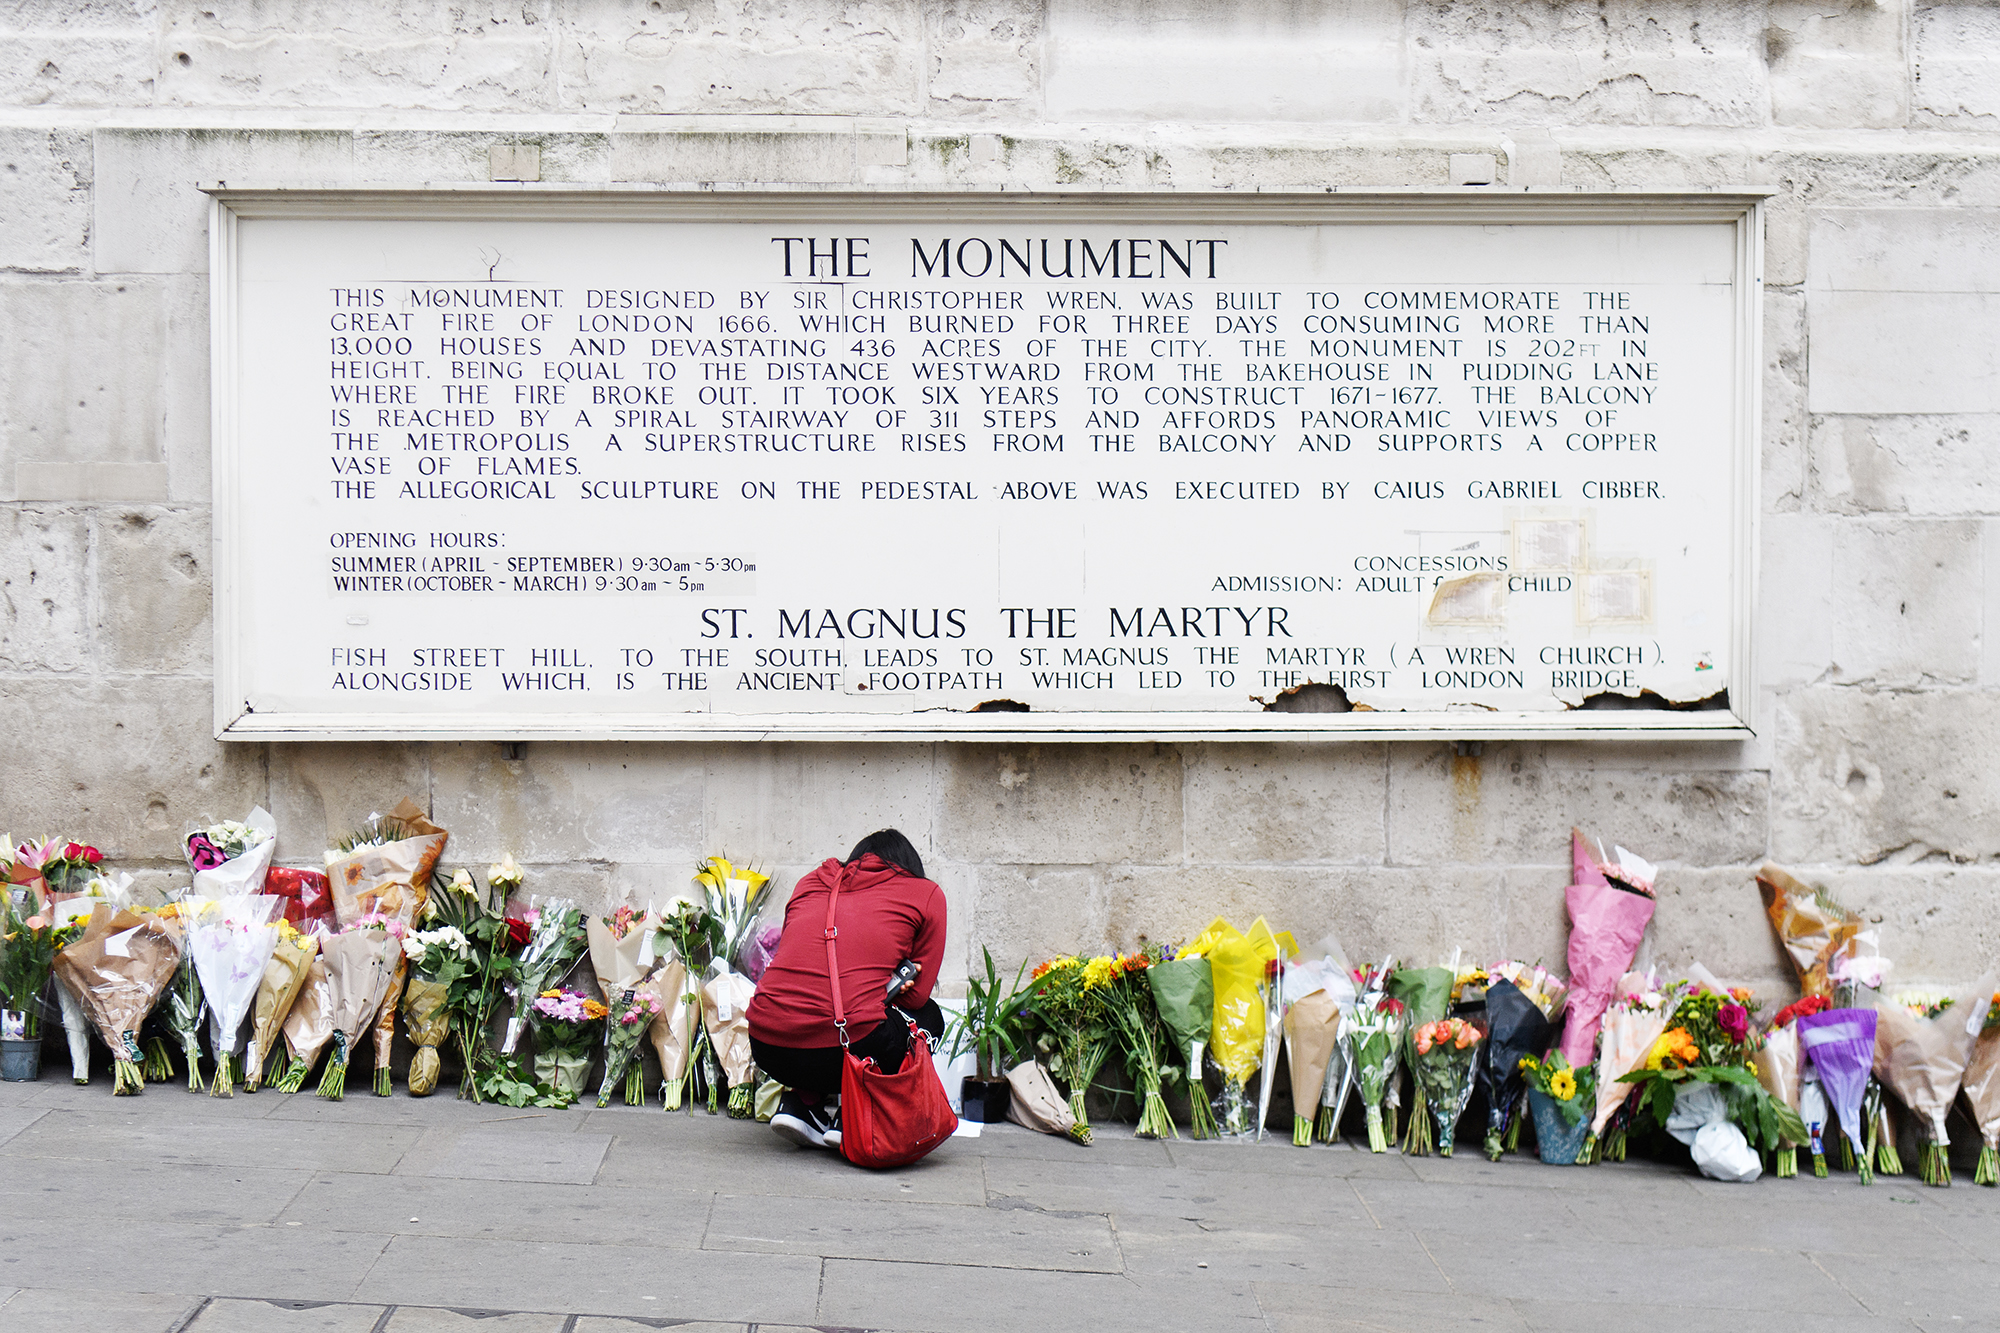 A woman looks at some of the floral tributes at Monument, near London Bridge, on June 5, 2017.